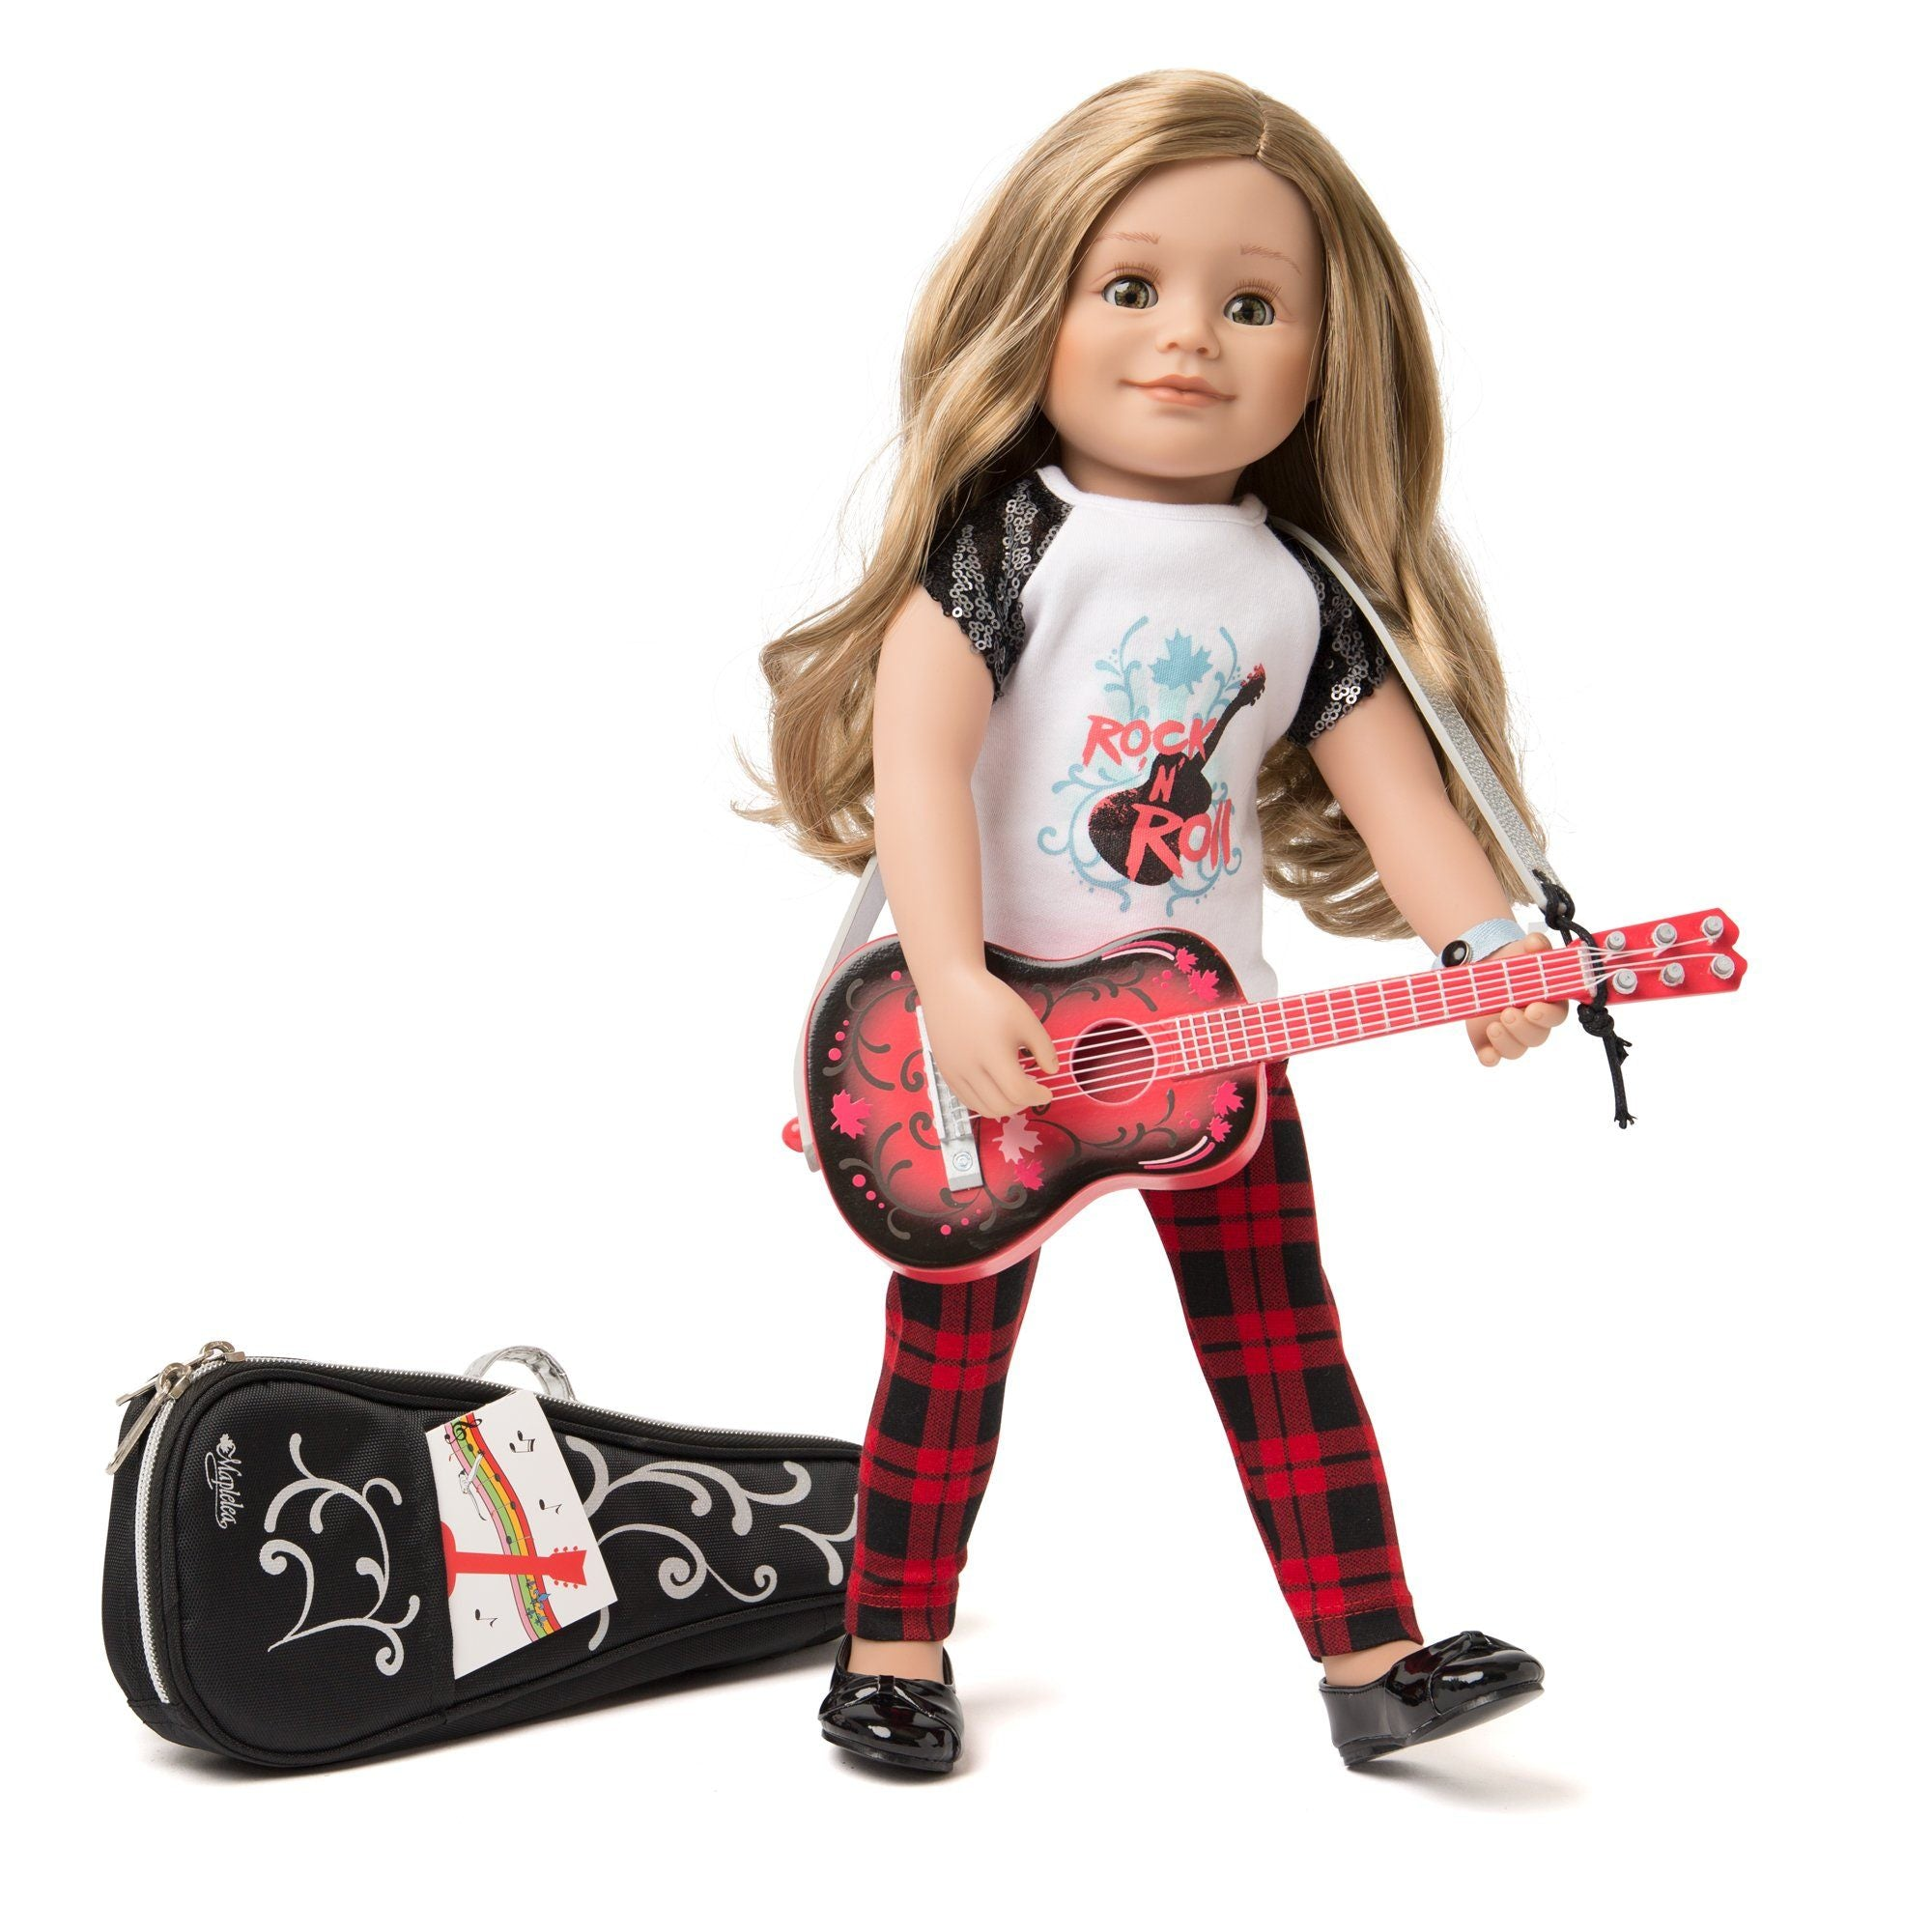 Maplelea wooden guitar with 18 inch doll.  Includes carrying case and music book.